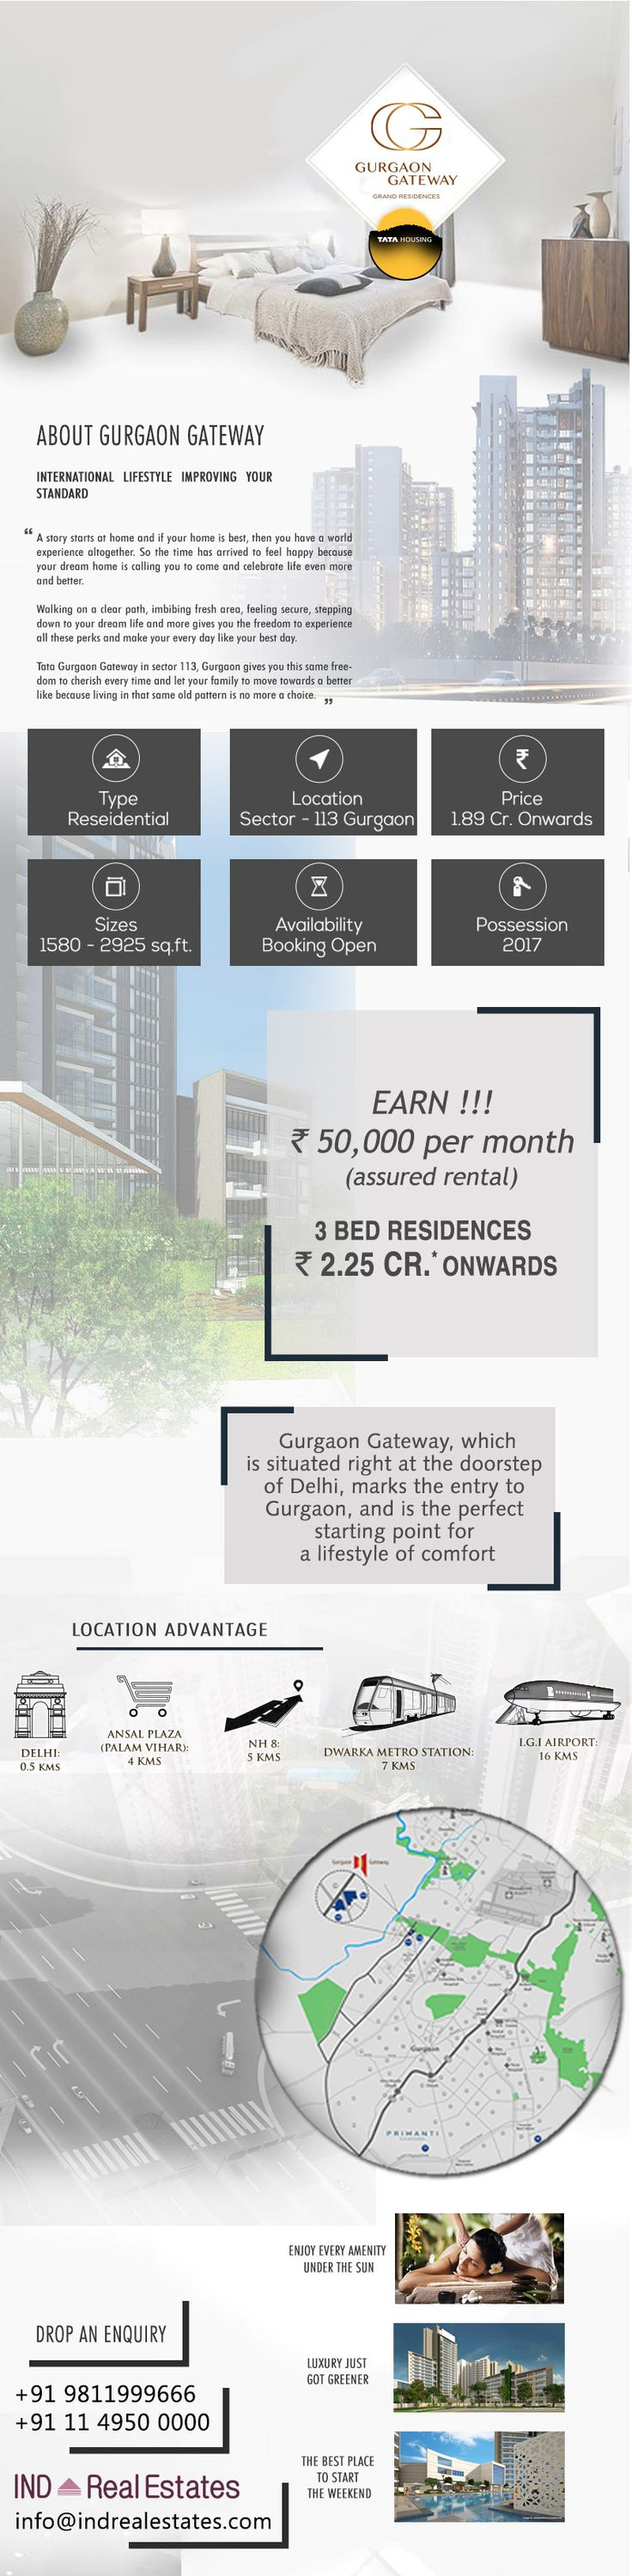 #TataGurgaonGatewayGrandResidences located at Sector 112 & 113 Gurgaon offering 2 & 3 BHK Apartments with modern amenities for the comfort of residents at very attractive price point.